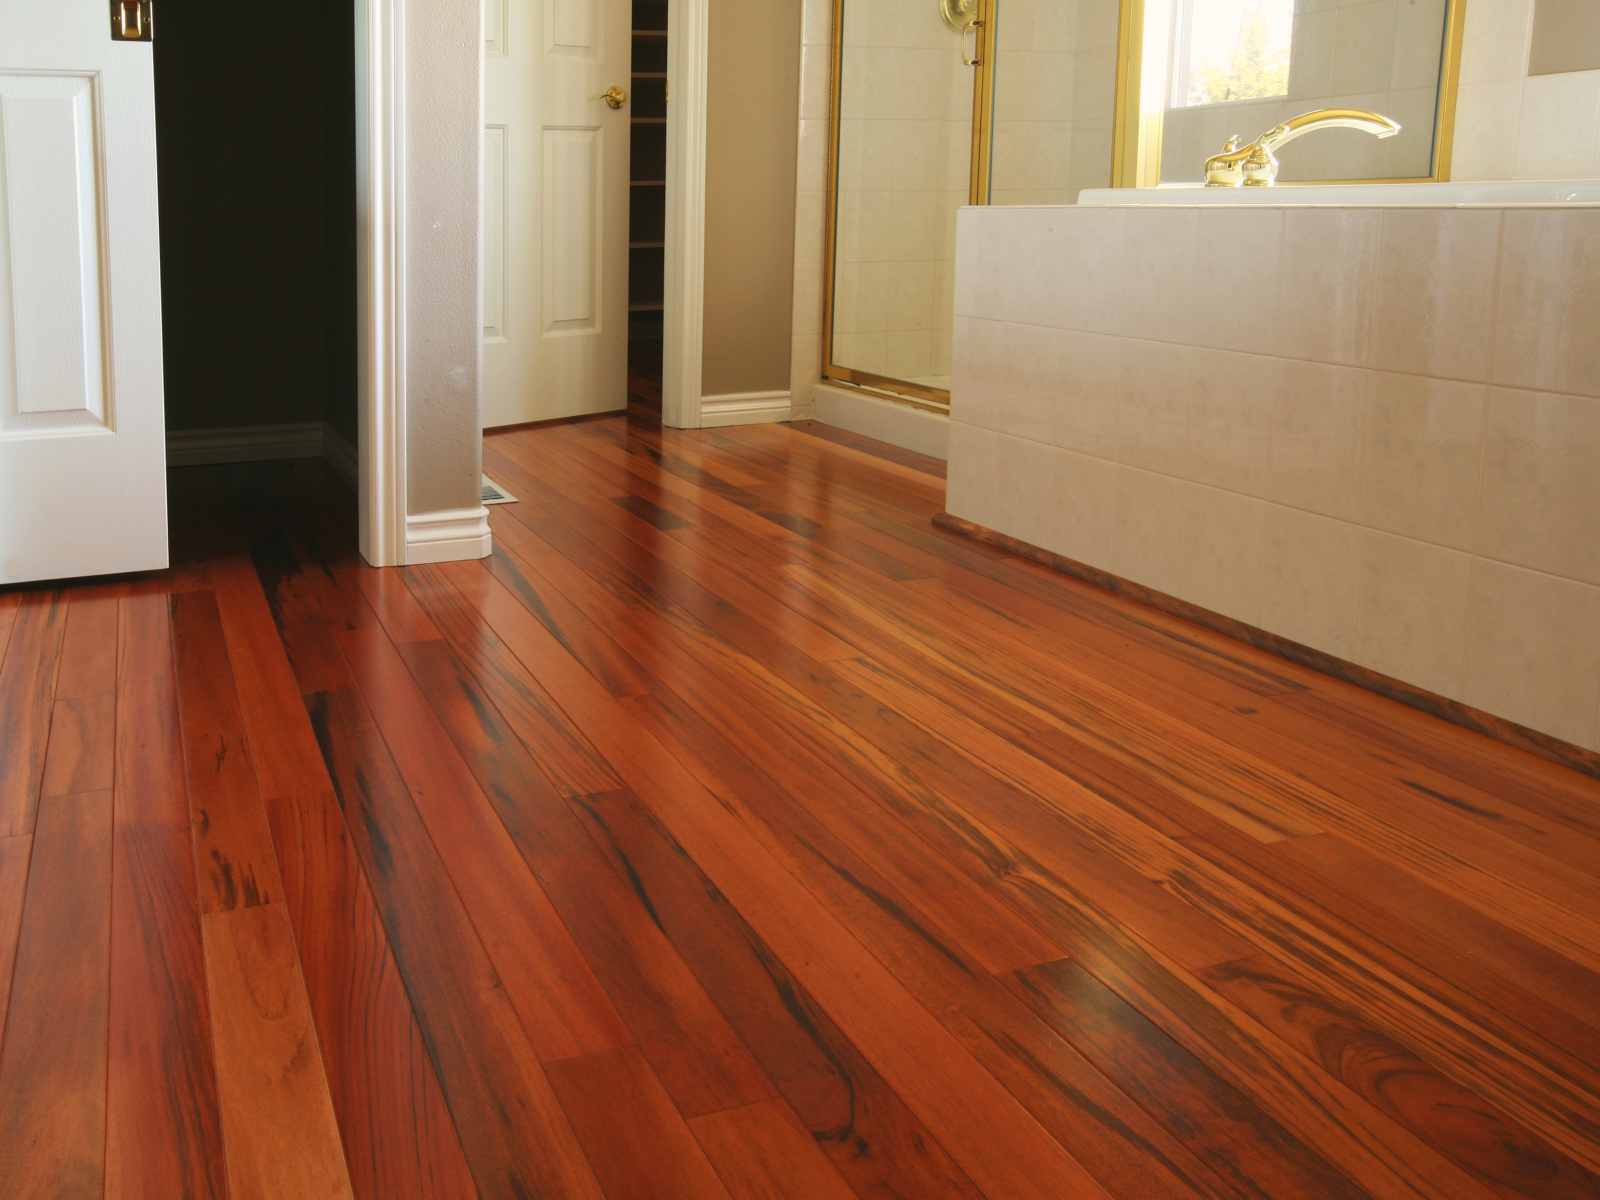 Bamboo flooring eco friendly flooring for your home - Laminate or wood flooring ...